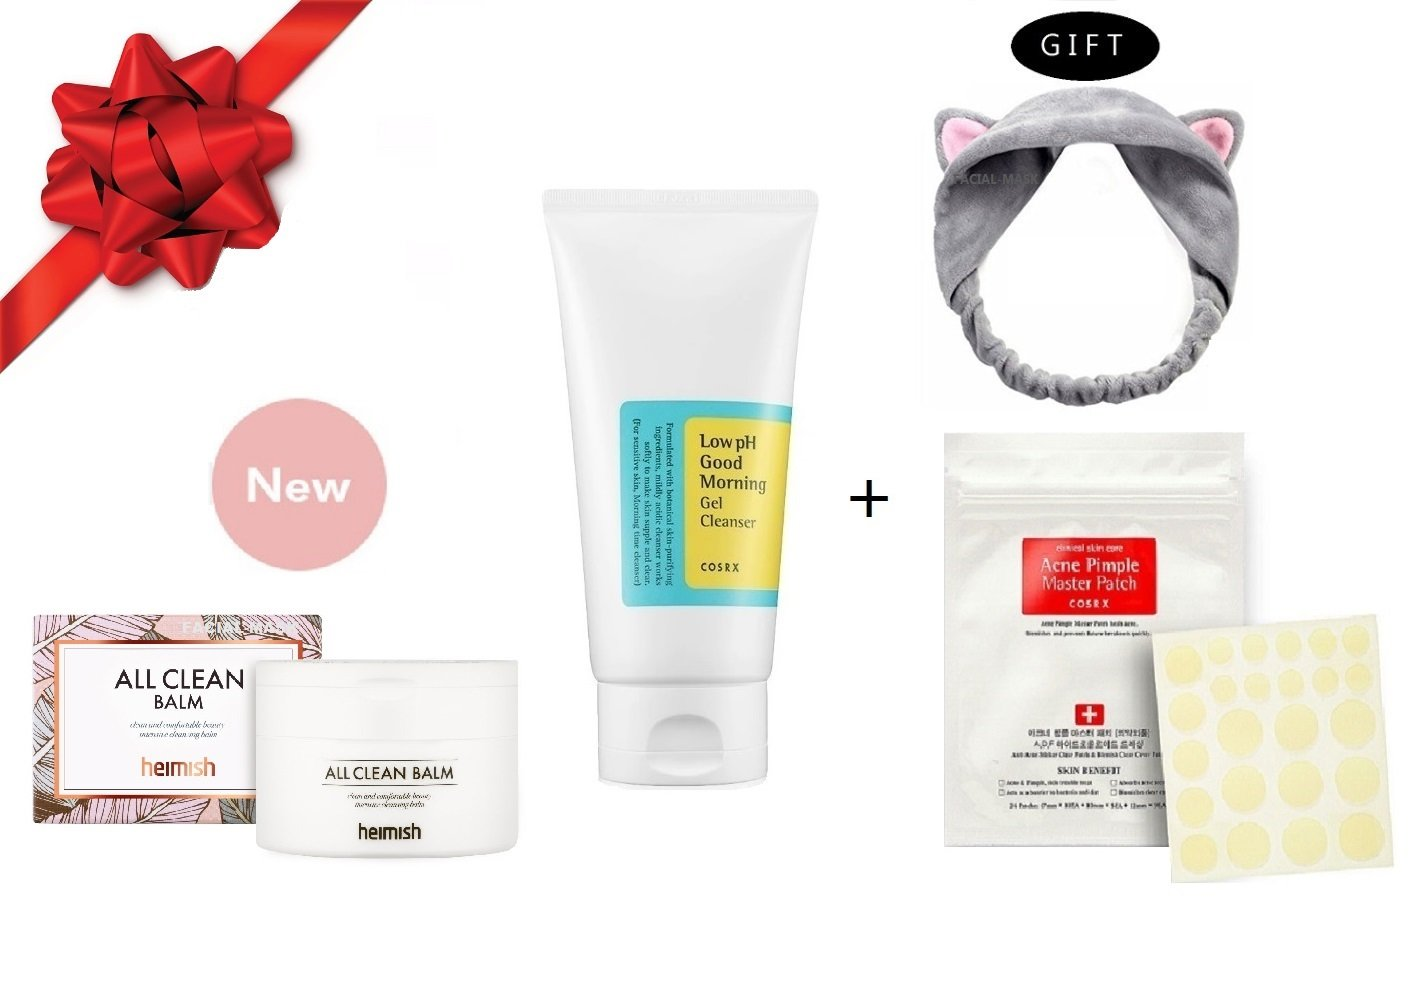 Heimish All Clean Balm & Cosrx Low PH Good Morning Gel Cleanser Bundle with Gifts (4 ITEMS)